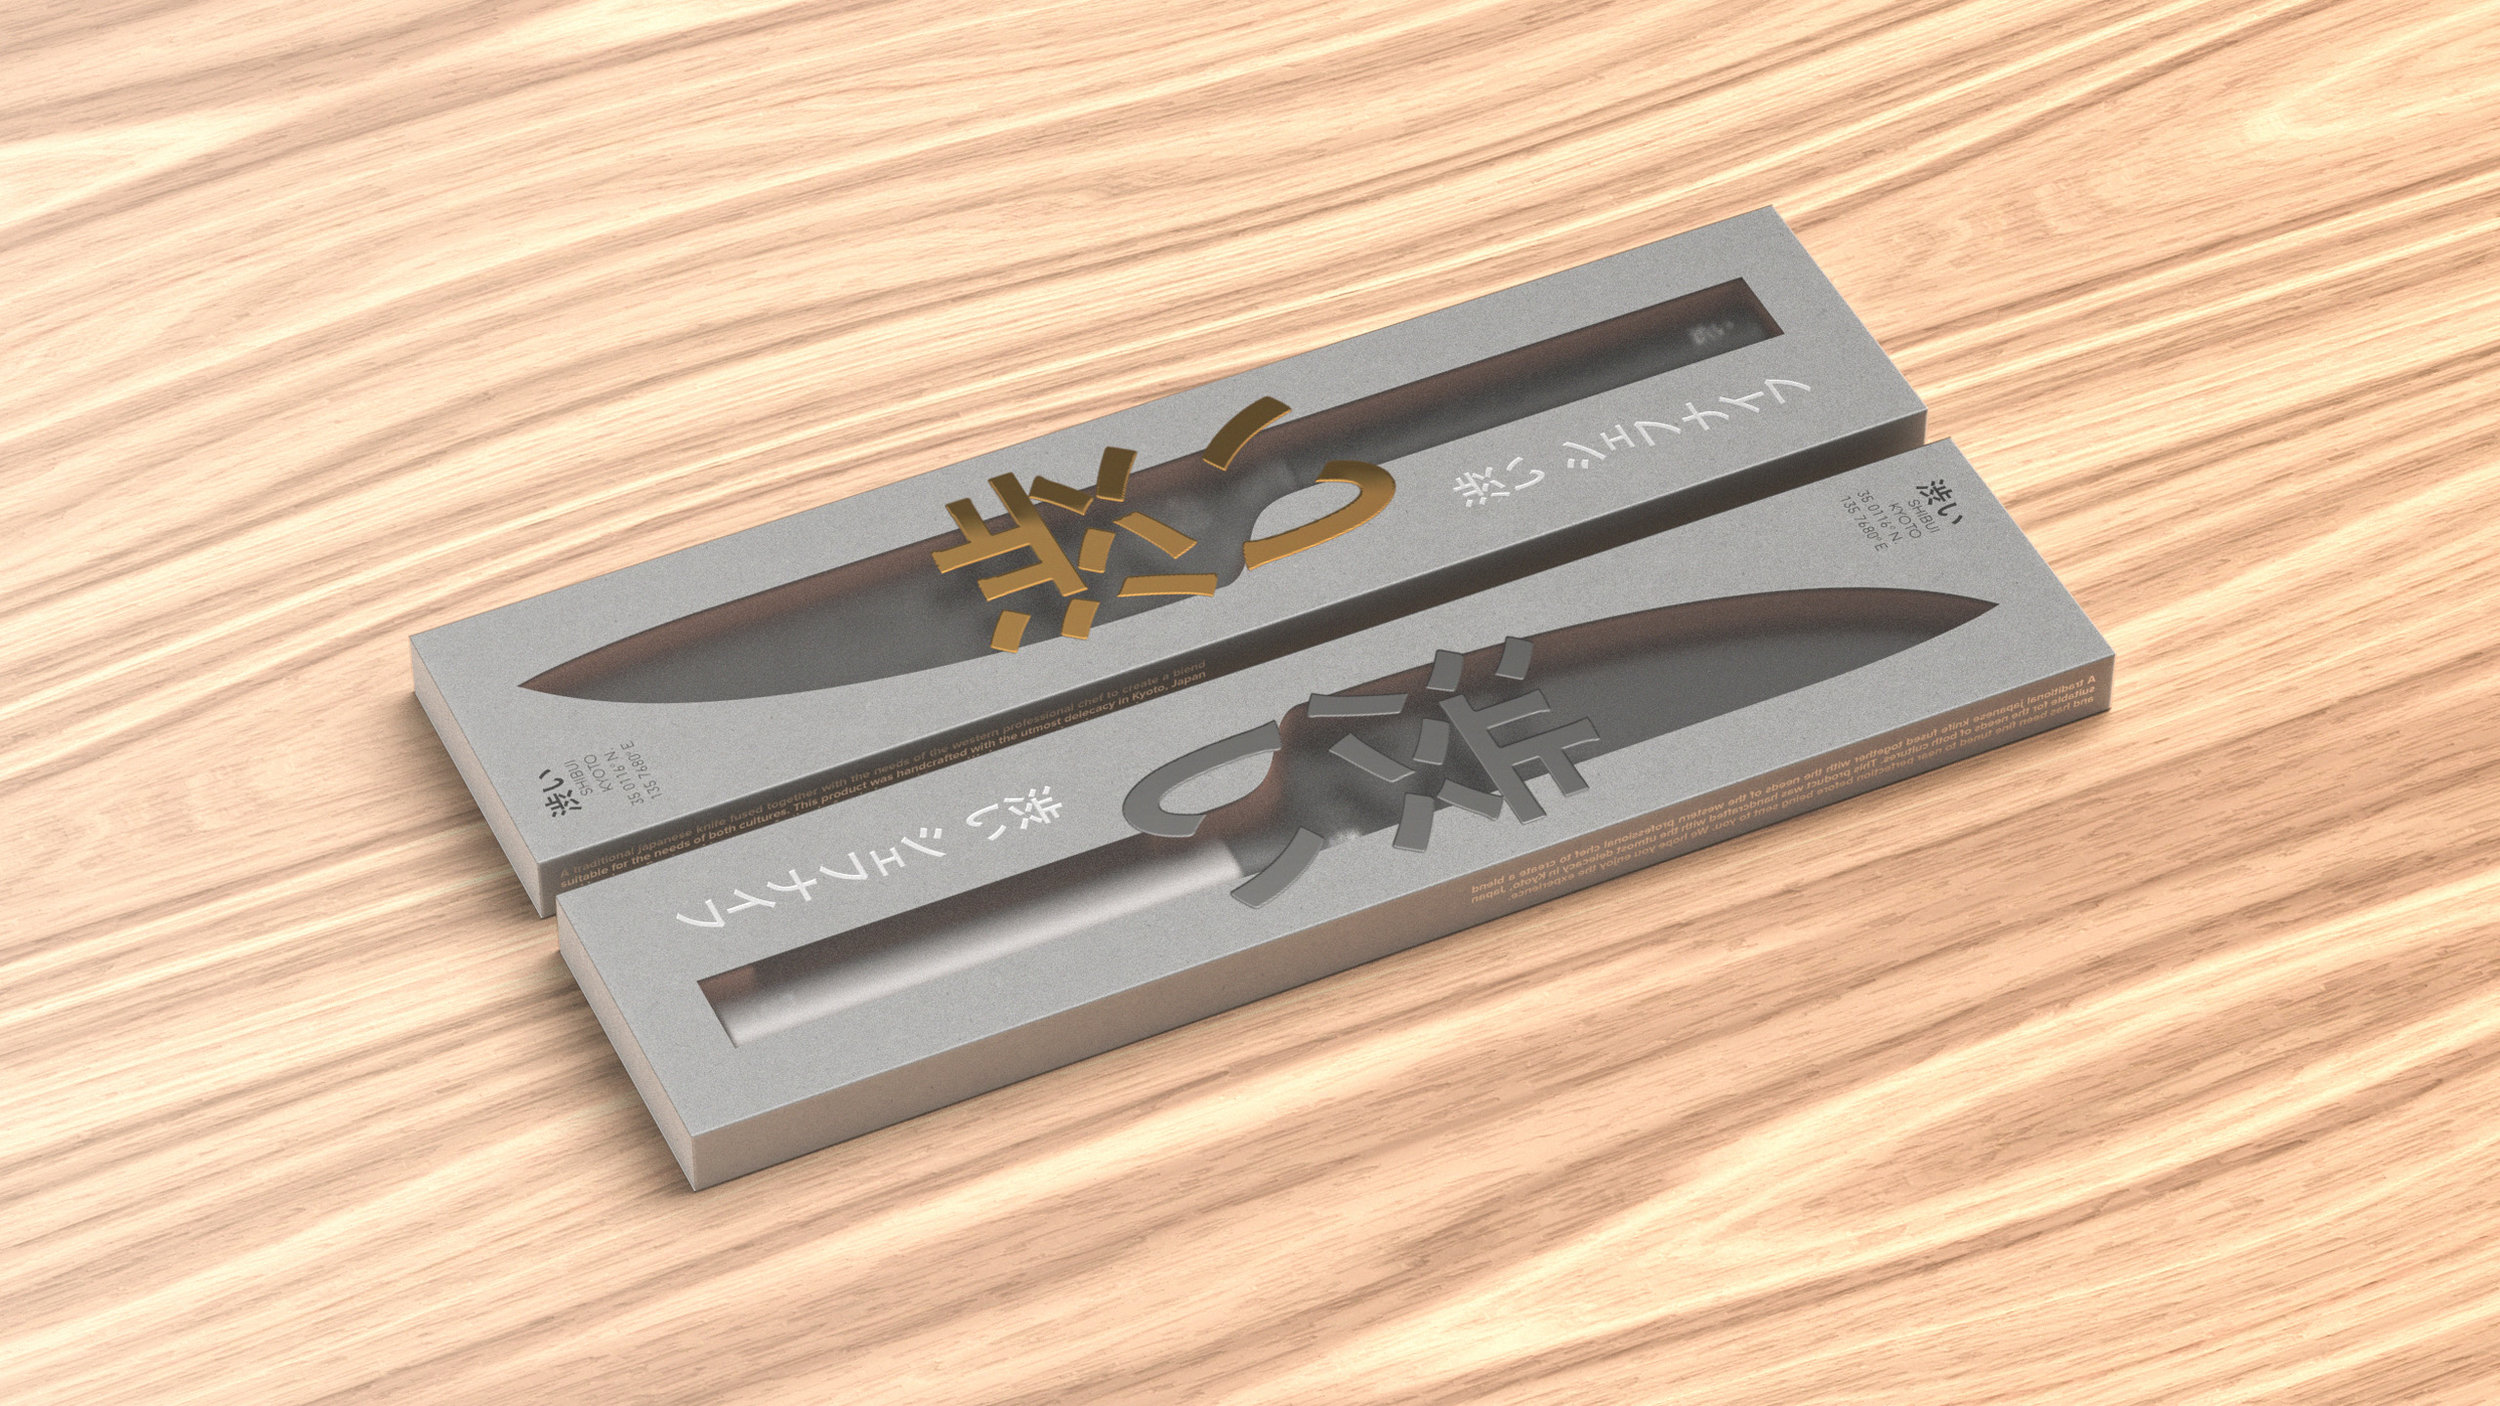 The different variations of the knife come in slightly different packaging, with the main difference being the colour of the foil on the embossed logo.